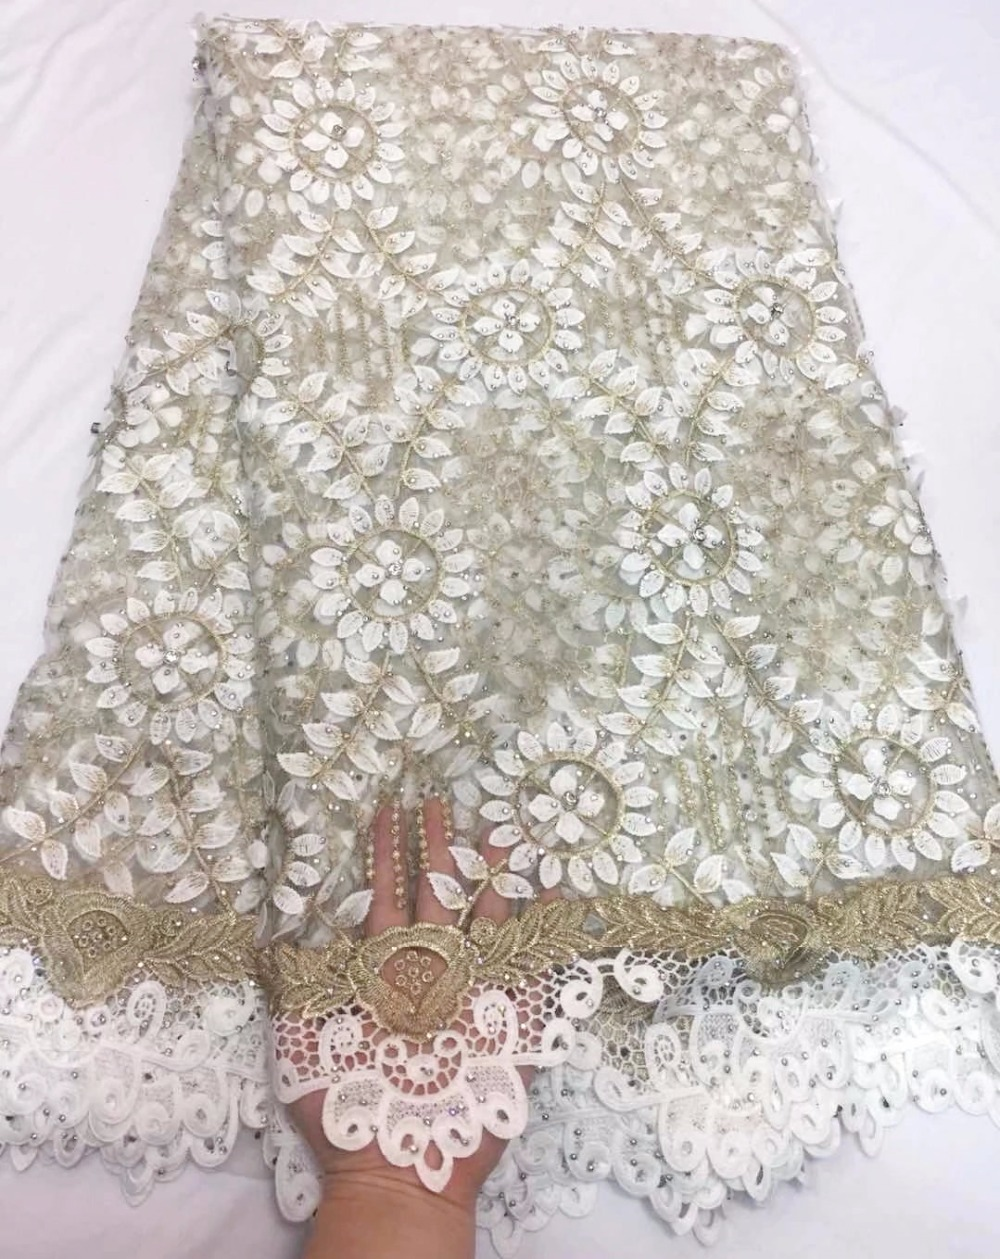 2018 Latest French Nigerian Laces Fabric High Quality Tulle African Laces Fabric Wedding African French Tulle Lace2018 Latest French Nigerian Laces Fabric High Quality Tulle African Laces Fabric Wedding African French Tulle Lace